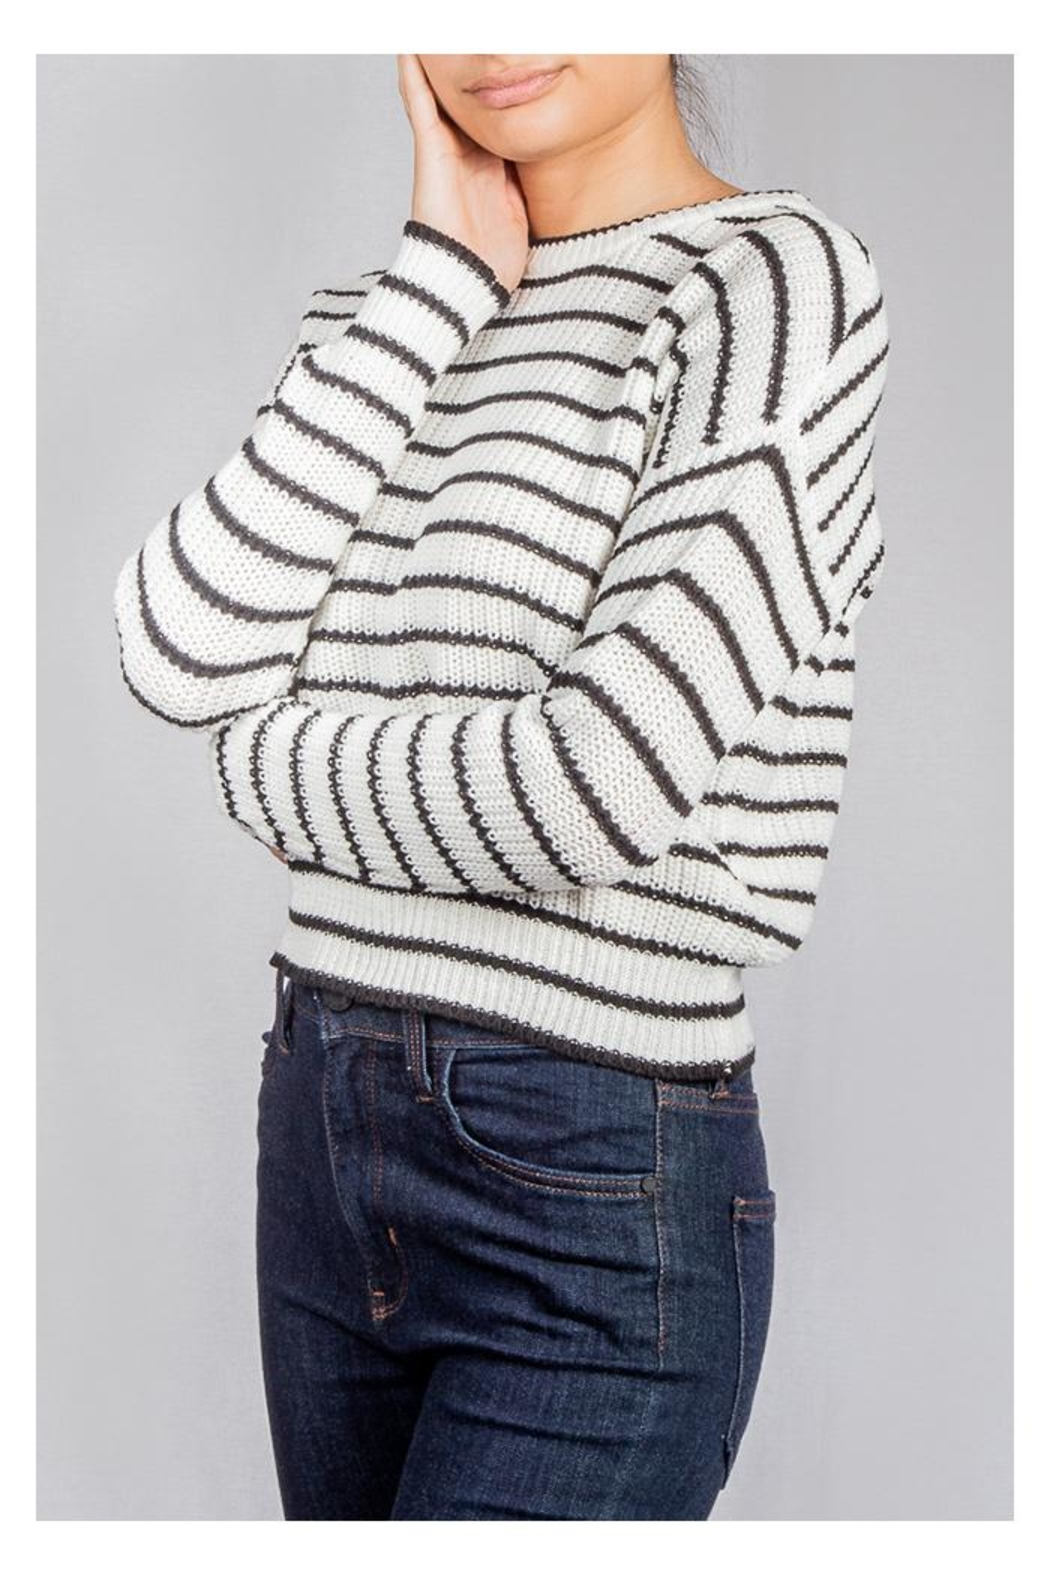 Audrey 3+1 Striped Knit Sweater - Front Full Image